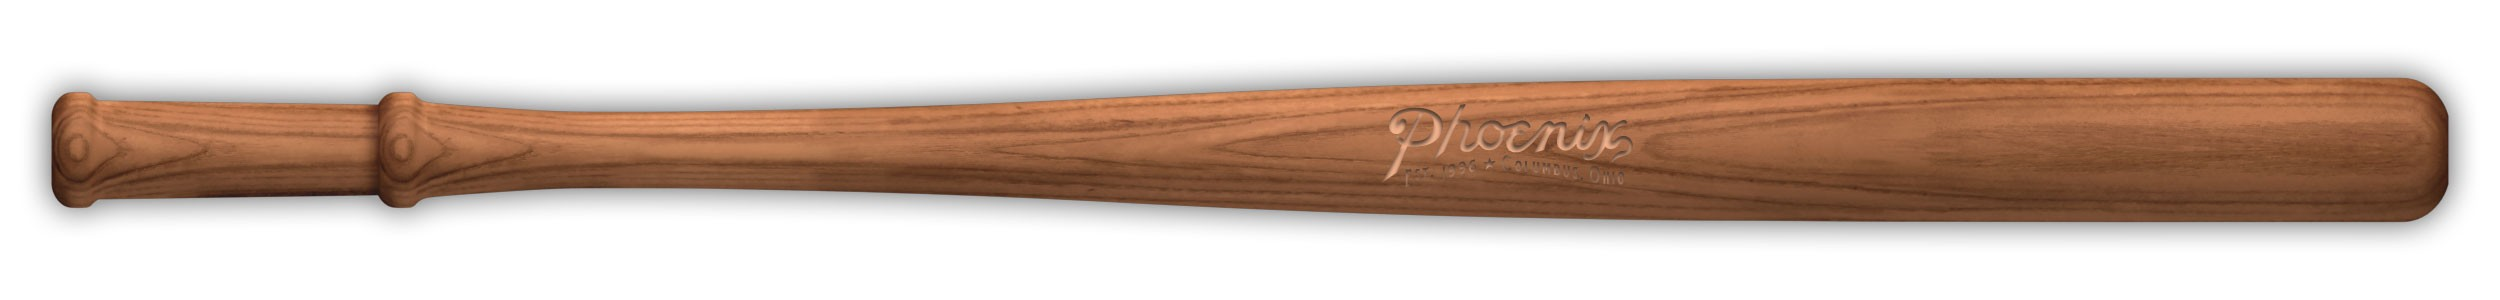 Modern Wooden Baseball Bat